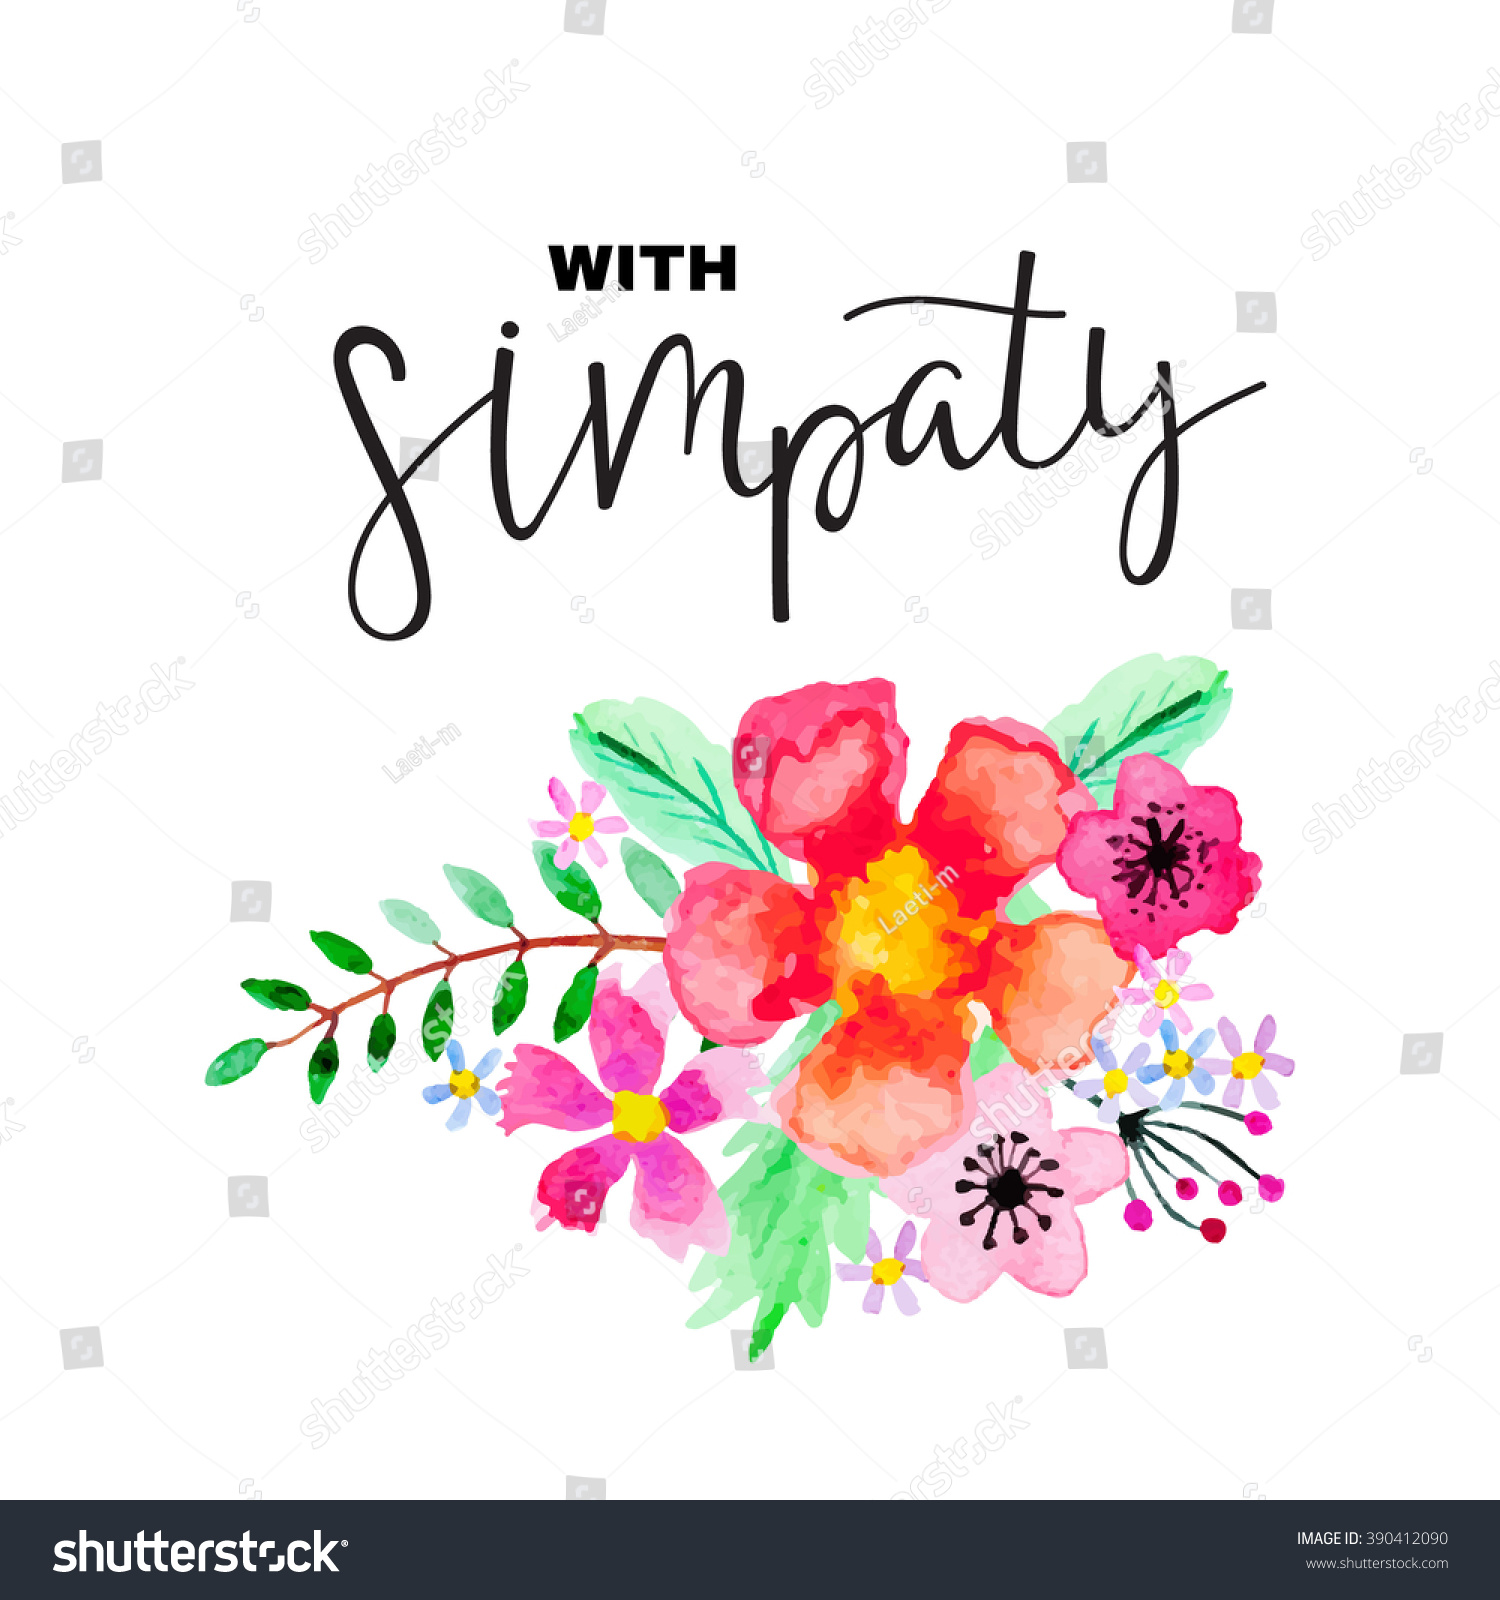 Greeting card floral ornament lettering with stock vector 390412090 greeting card with floral ornament and lettering with sympathy cute bright background with kristyandbryce Images